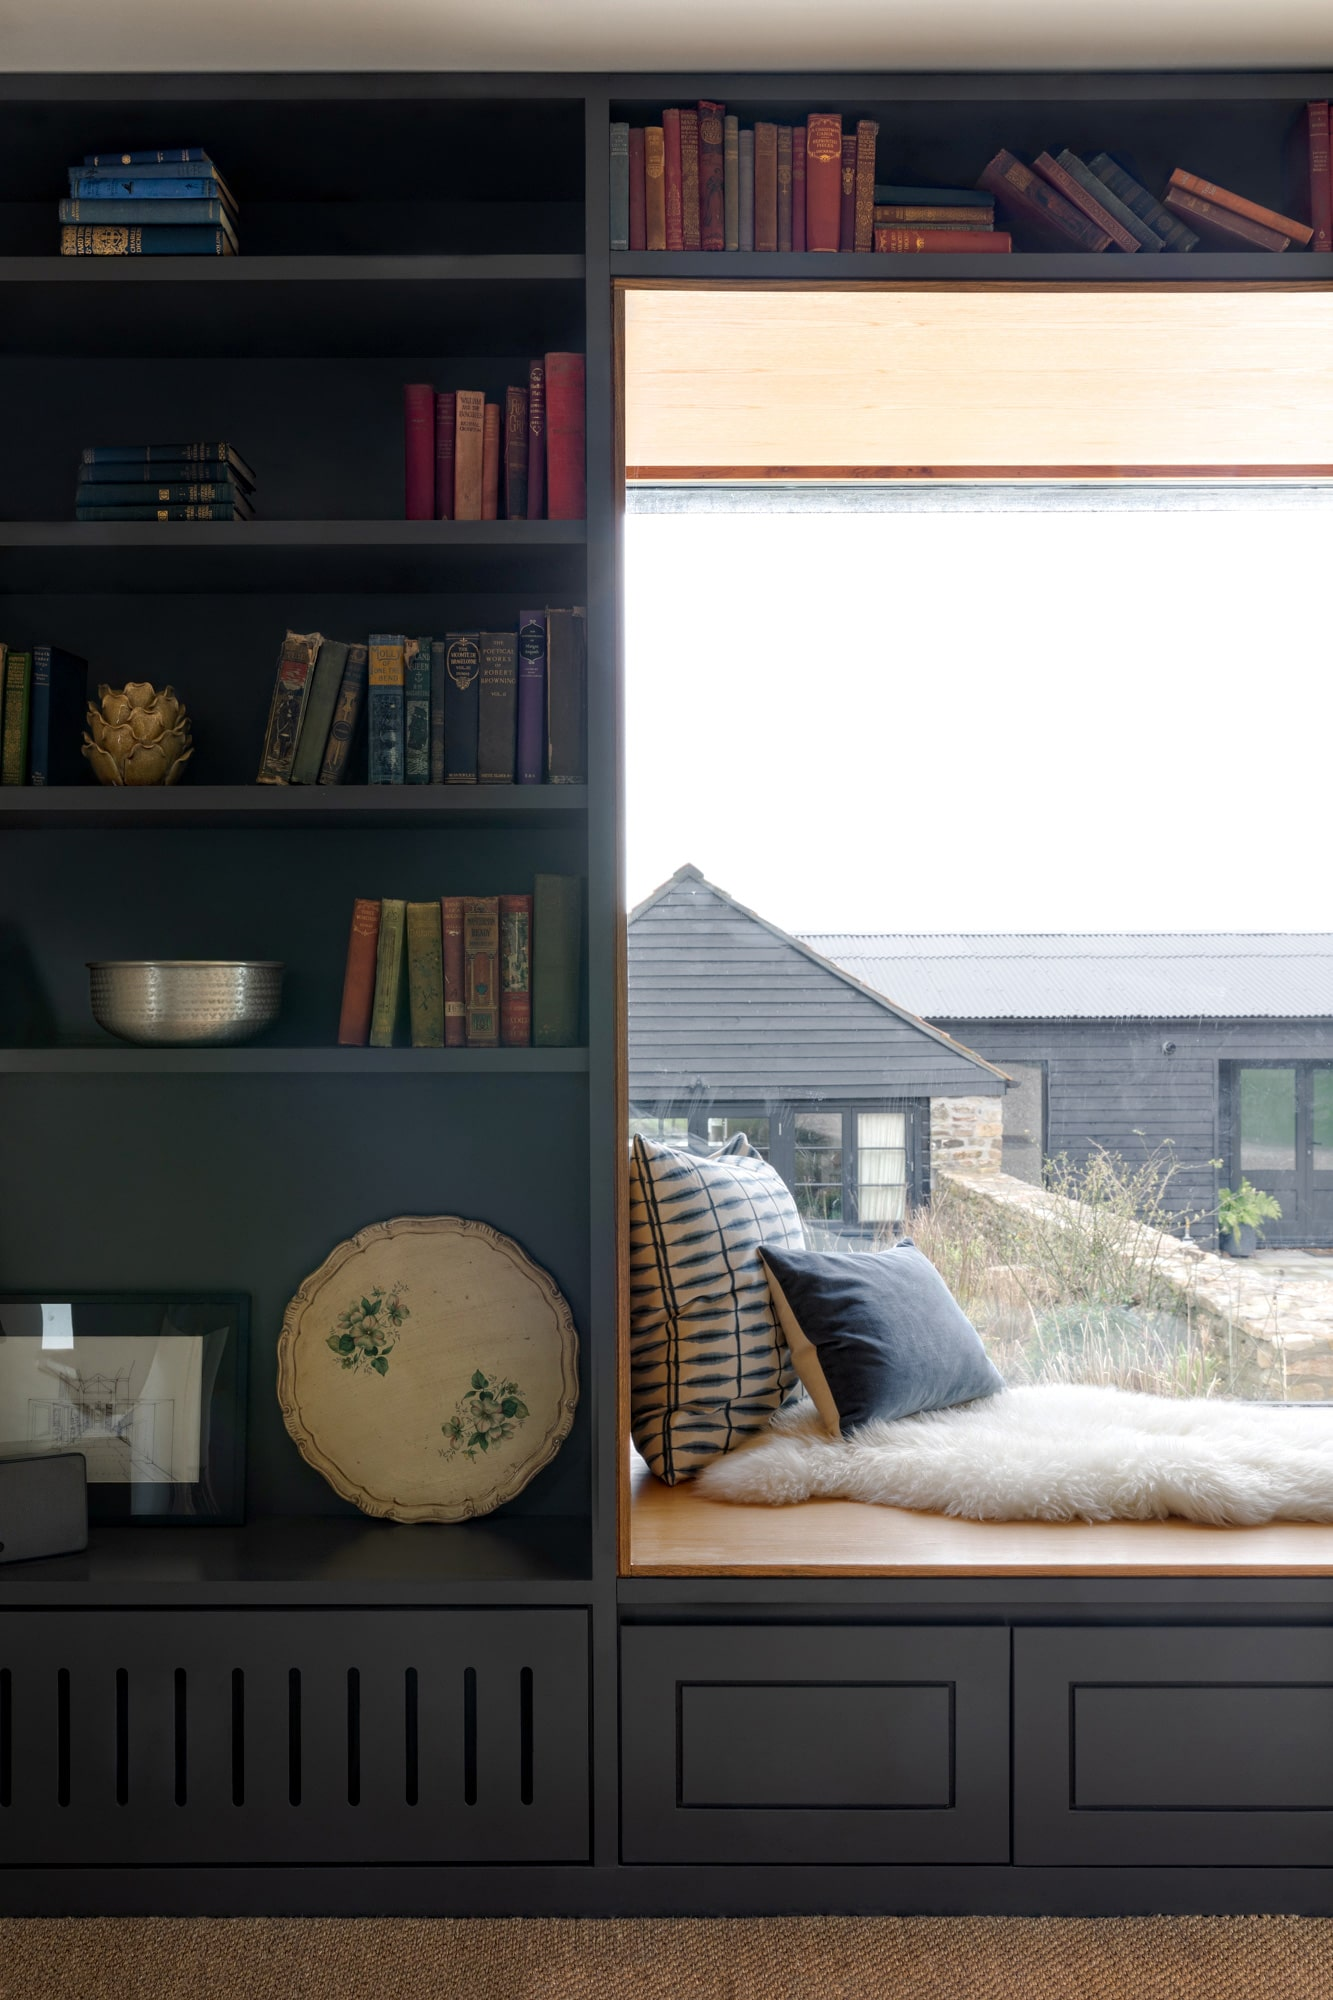 interior detail photo of a sitting room: a reading nook next to the window with 2 cushions; shelving unit with book on the left side of the window